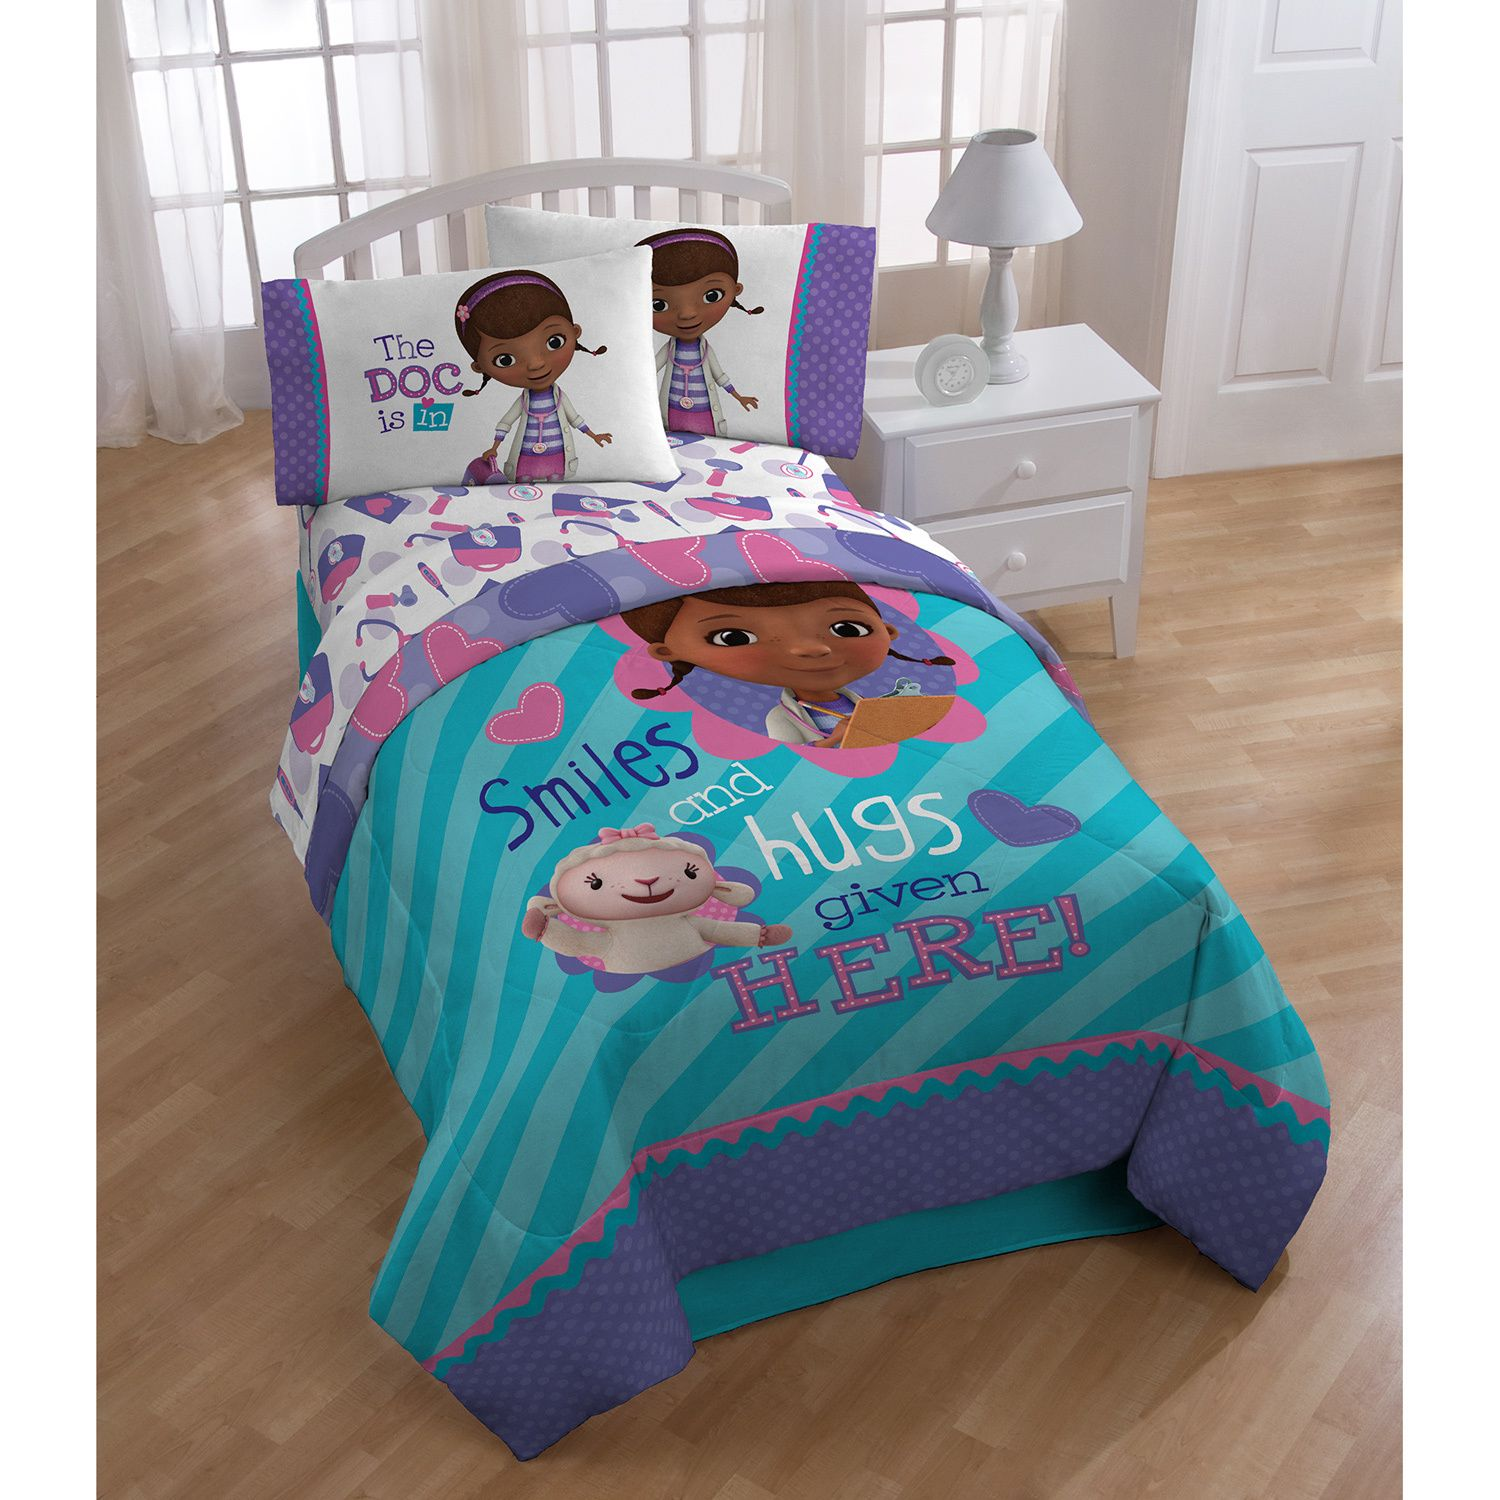 Soft And Cuddly The Doc Mcstuffins Twin Size Bedding Set